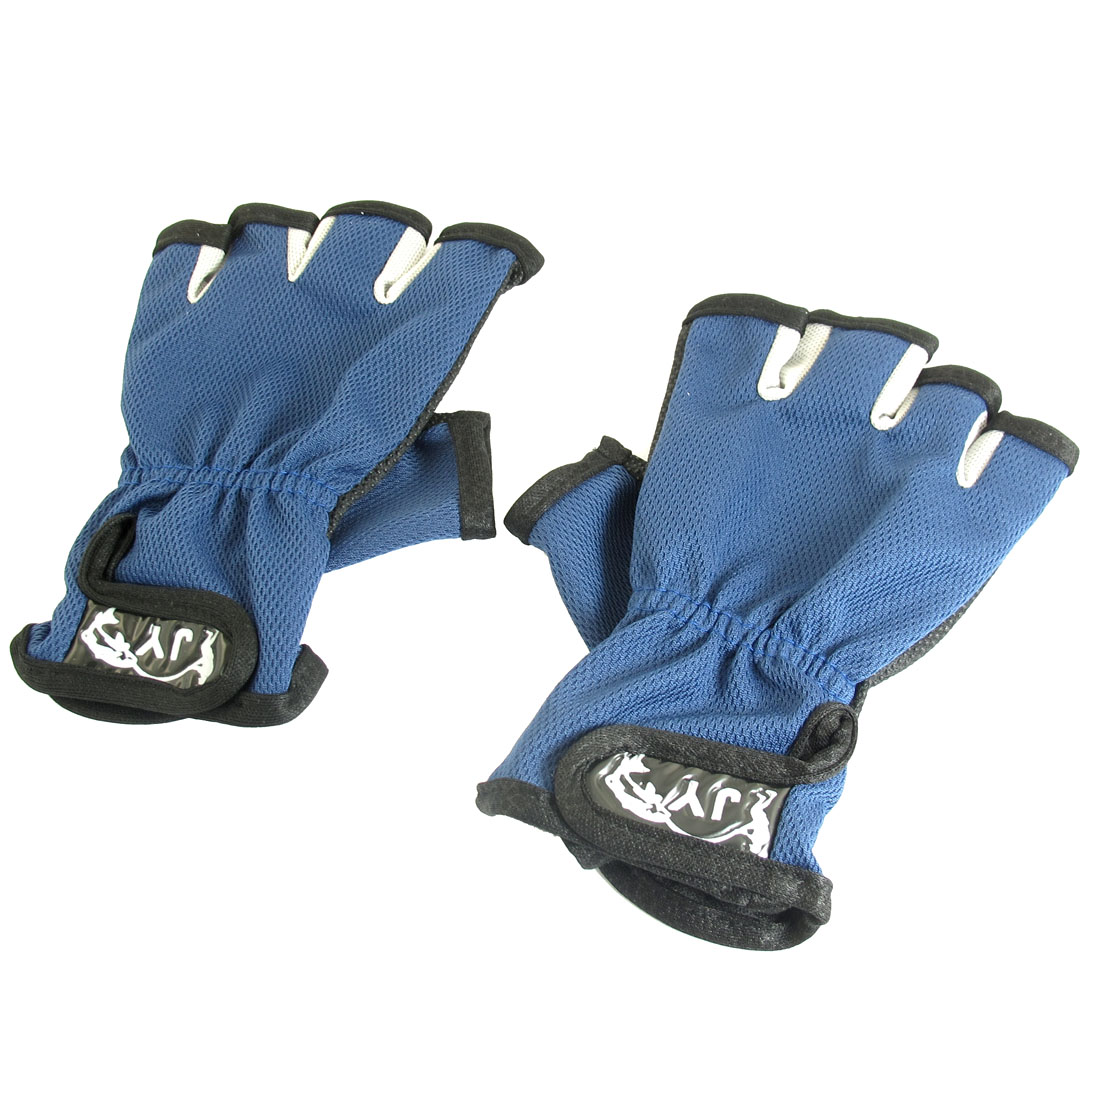 Fisherman Hook Loop Fastener Half Finger Antislip Dots Palm Fishing Gloves Blue Black Pair